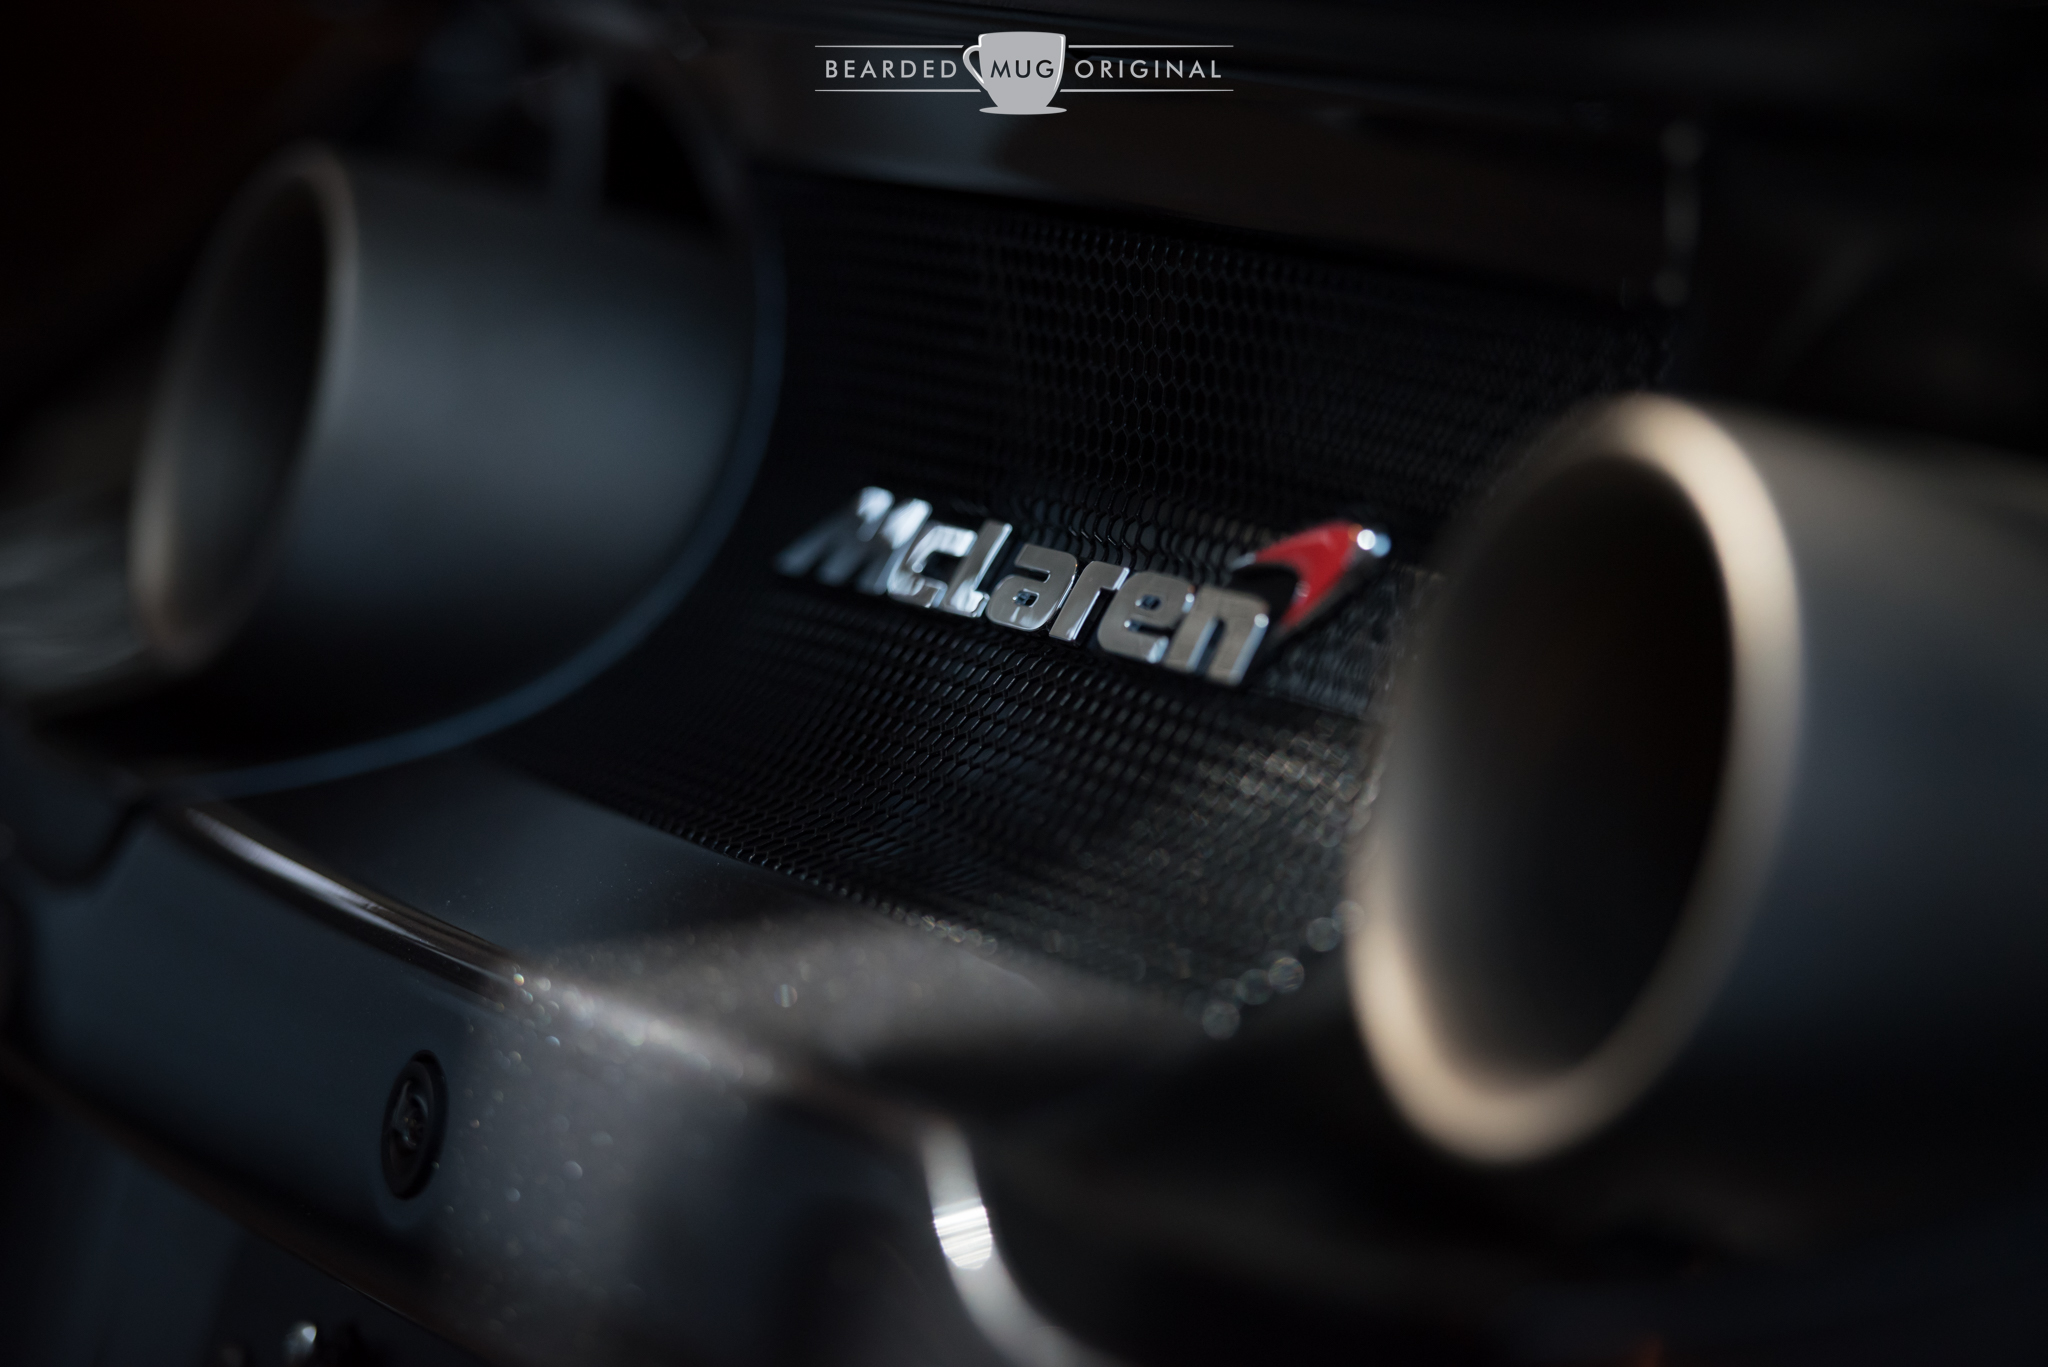 The fun pipes of the McLaren 675LT on display.